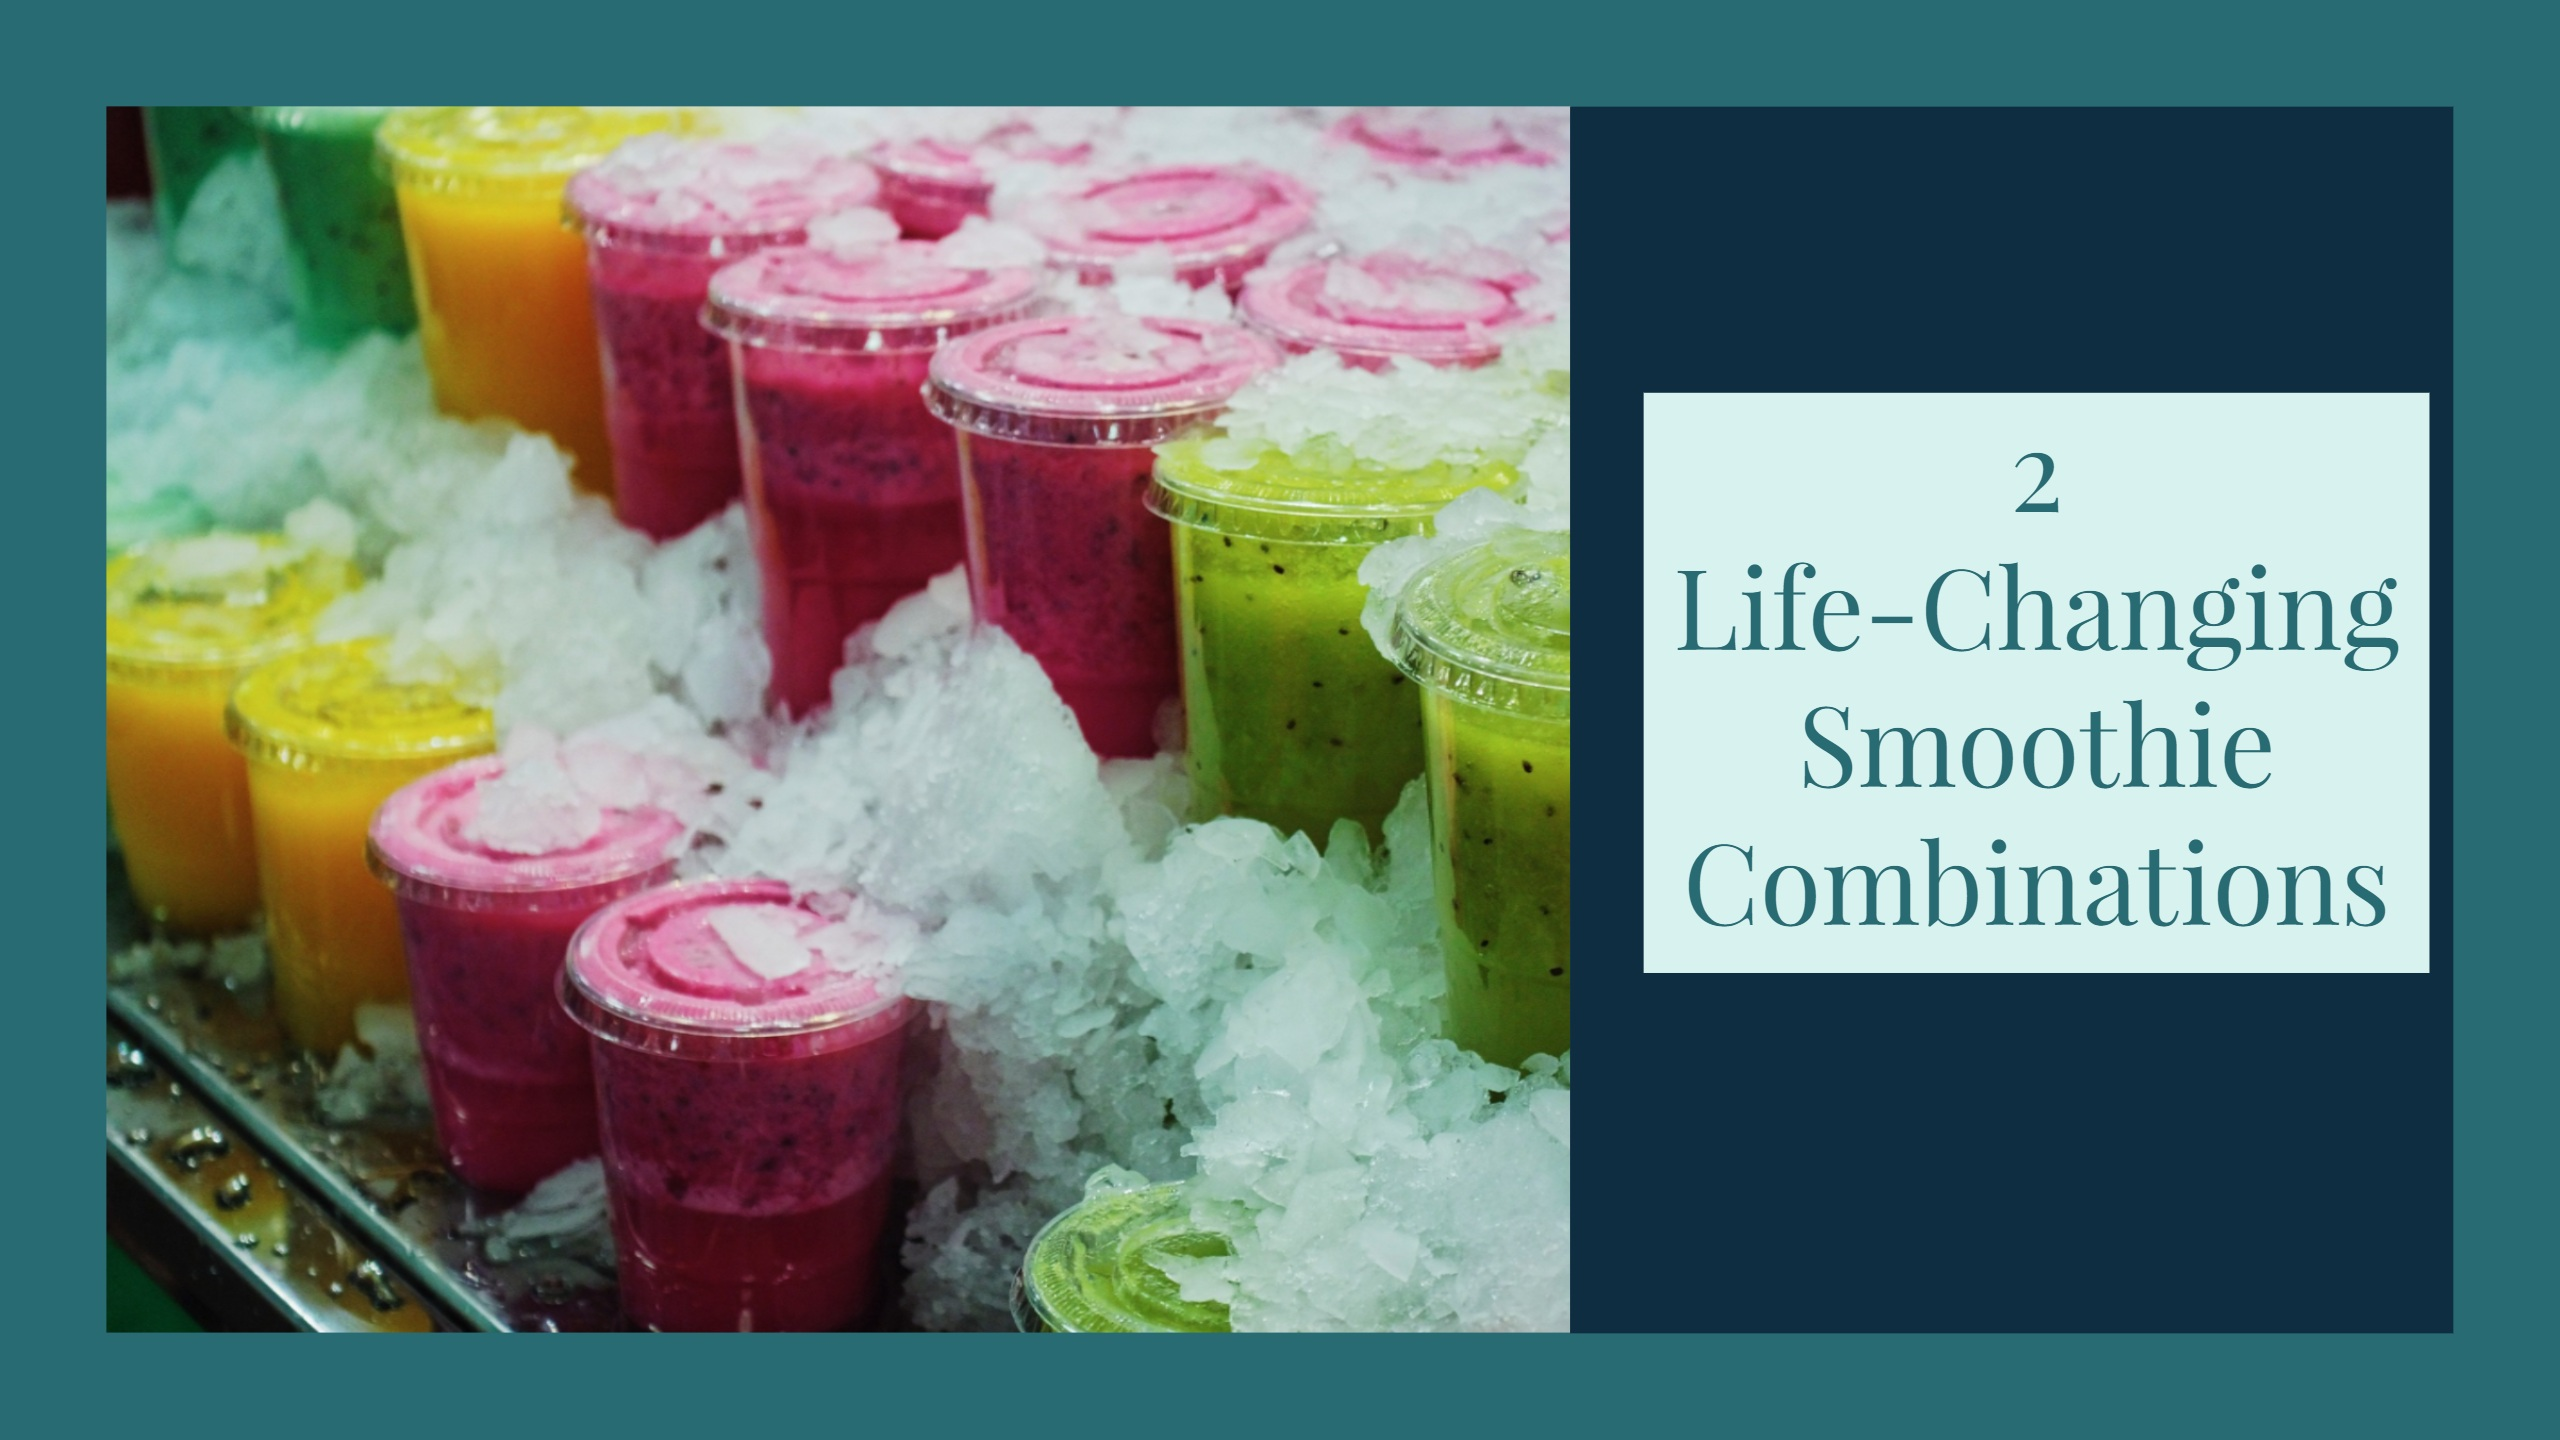 2 life-changing smoothie combinations that you absolutely MUST TRY